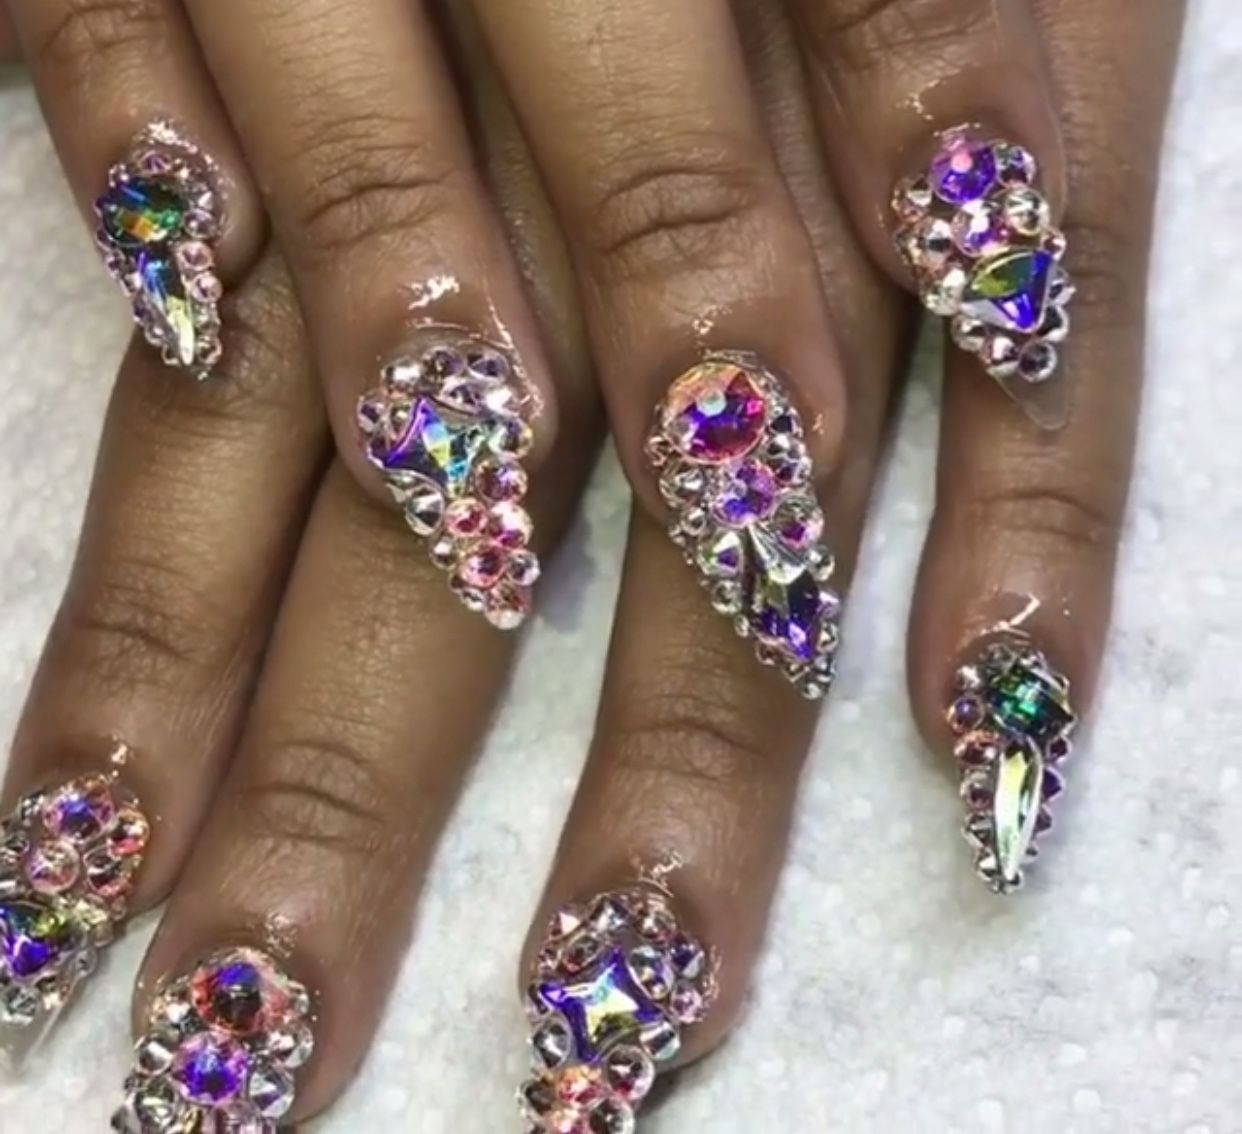 Diamond Nail Design Stiletto Acrylic Nails Colorful Art Med Length Nailart Naildesign Pin Amerishabeauty